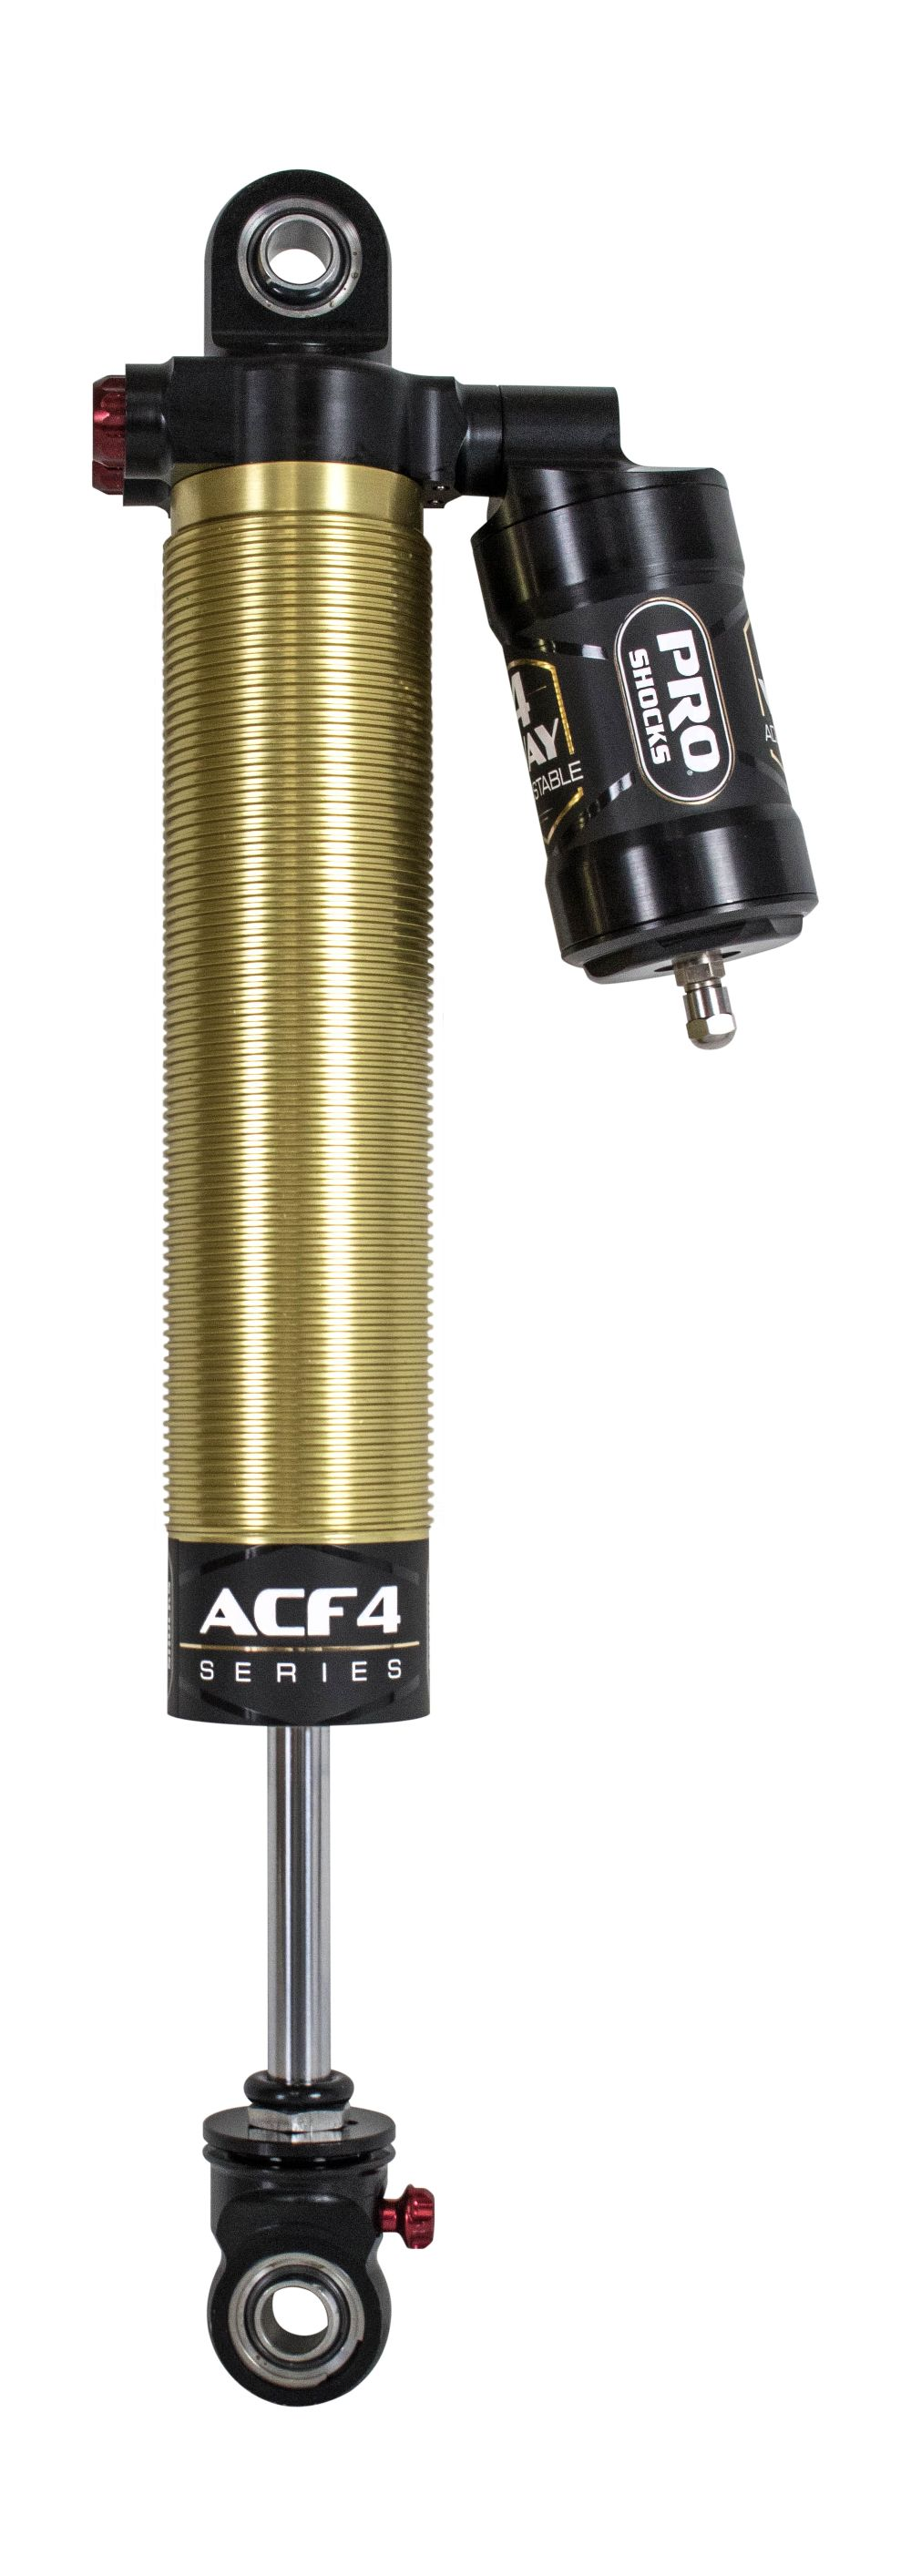 4-way Adjustable Threaded Shock - Call PRO Shocks for your custom built shock